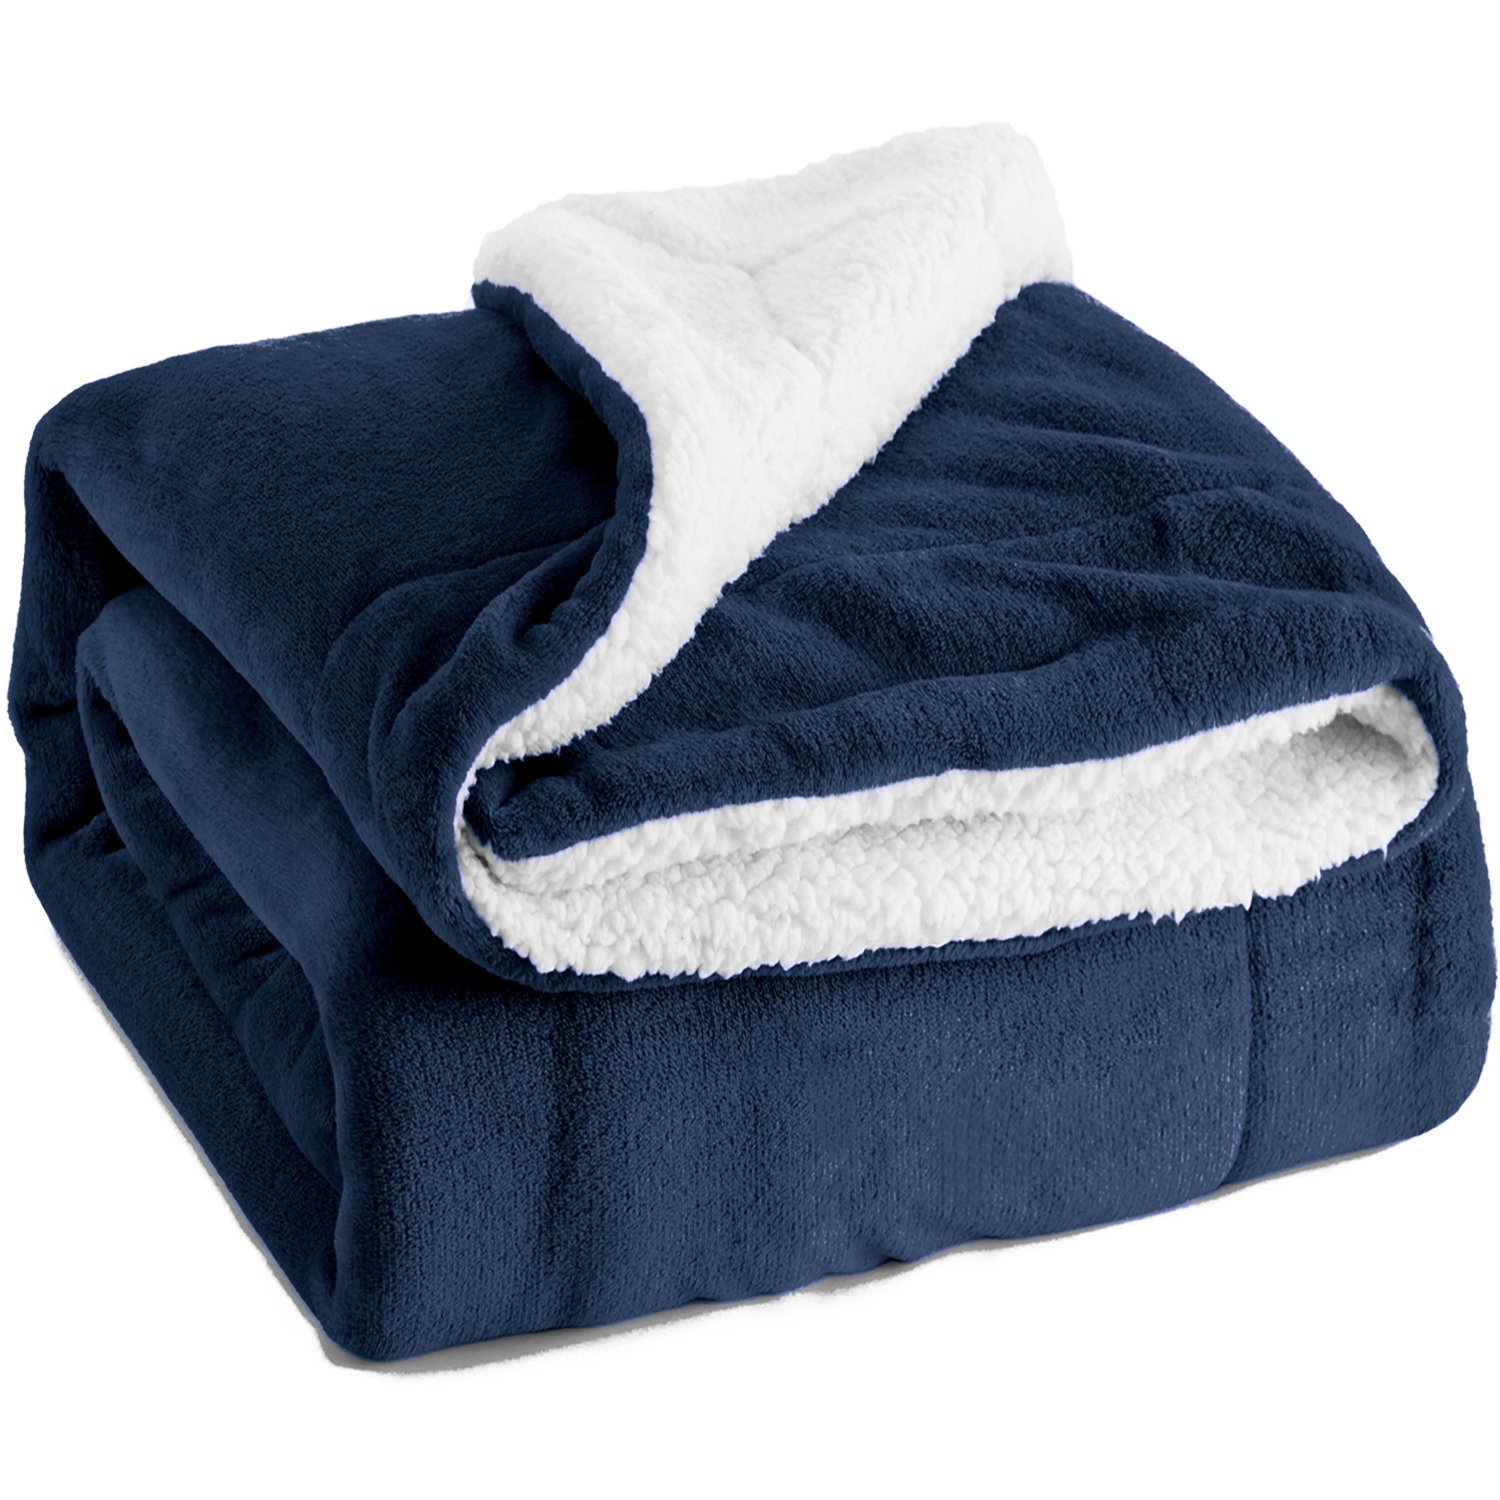 BEDSURE Sherpa Fleece Blanket Throw Size Navy Blue Plush Throw Blanket Fuzzy Soft Blanket Microfiber bed accessories Bed Accessories – Top accessories for bed that every bedroom need 81vu23ogIeL